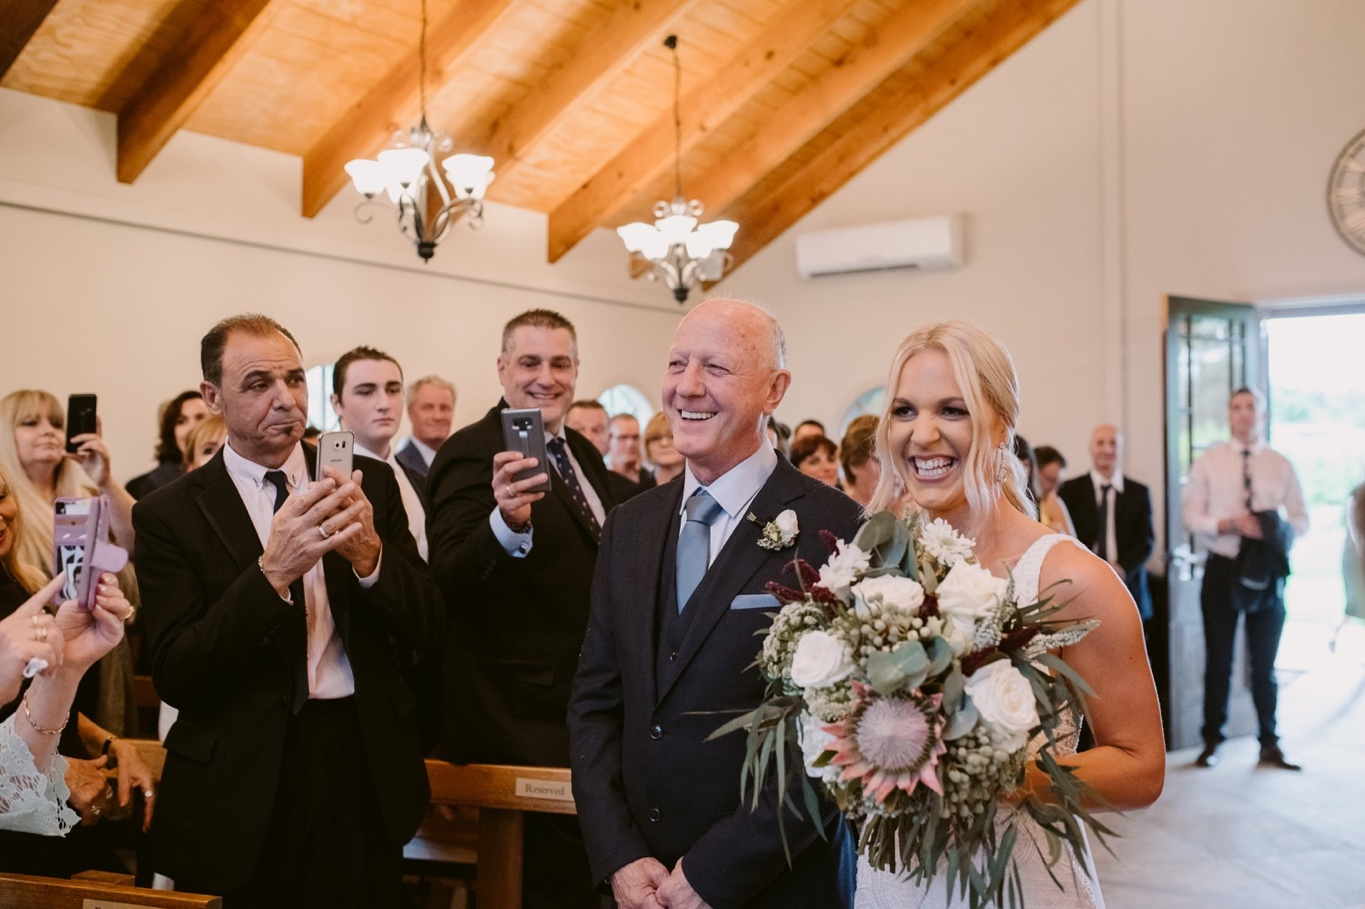 Immerse Yarra Valley Winery Wedding Photography49.jpg